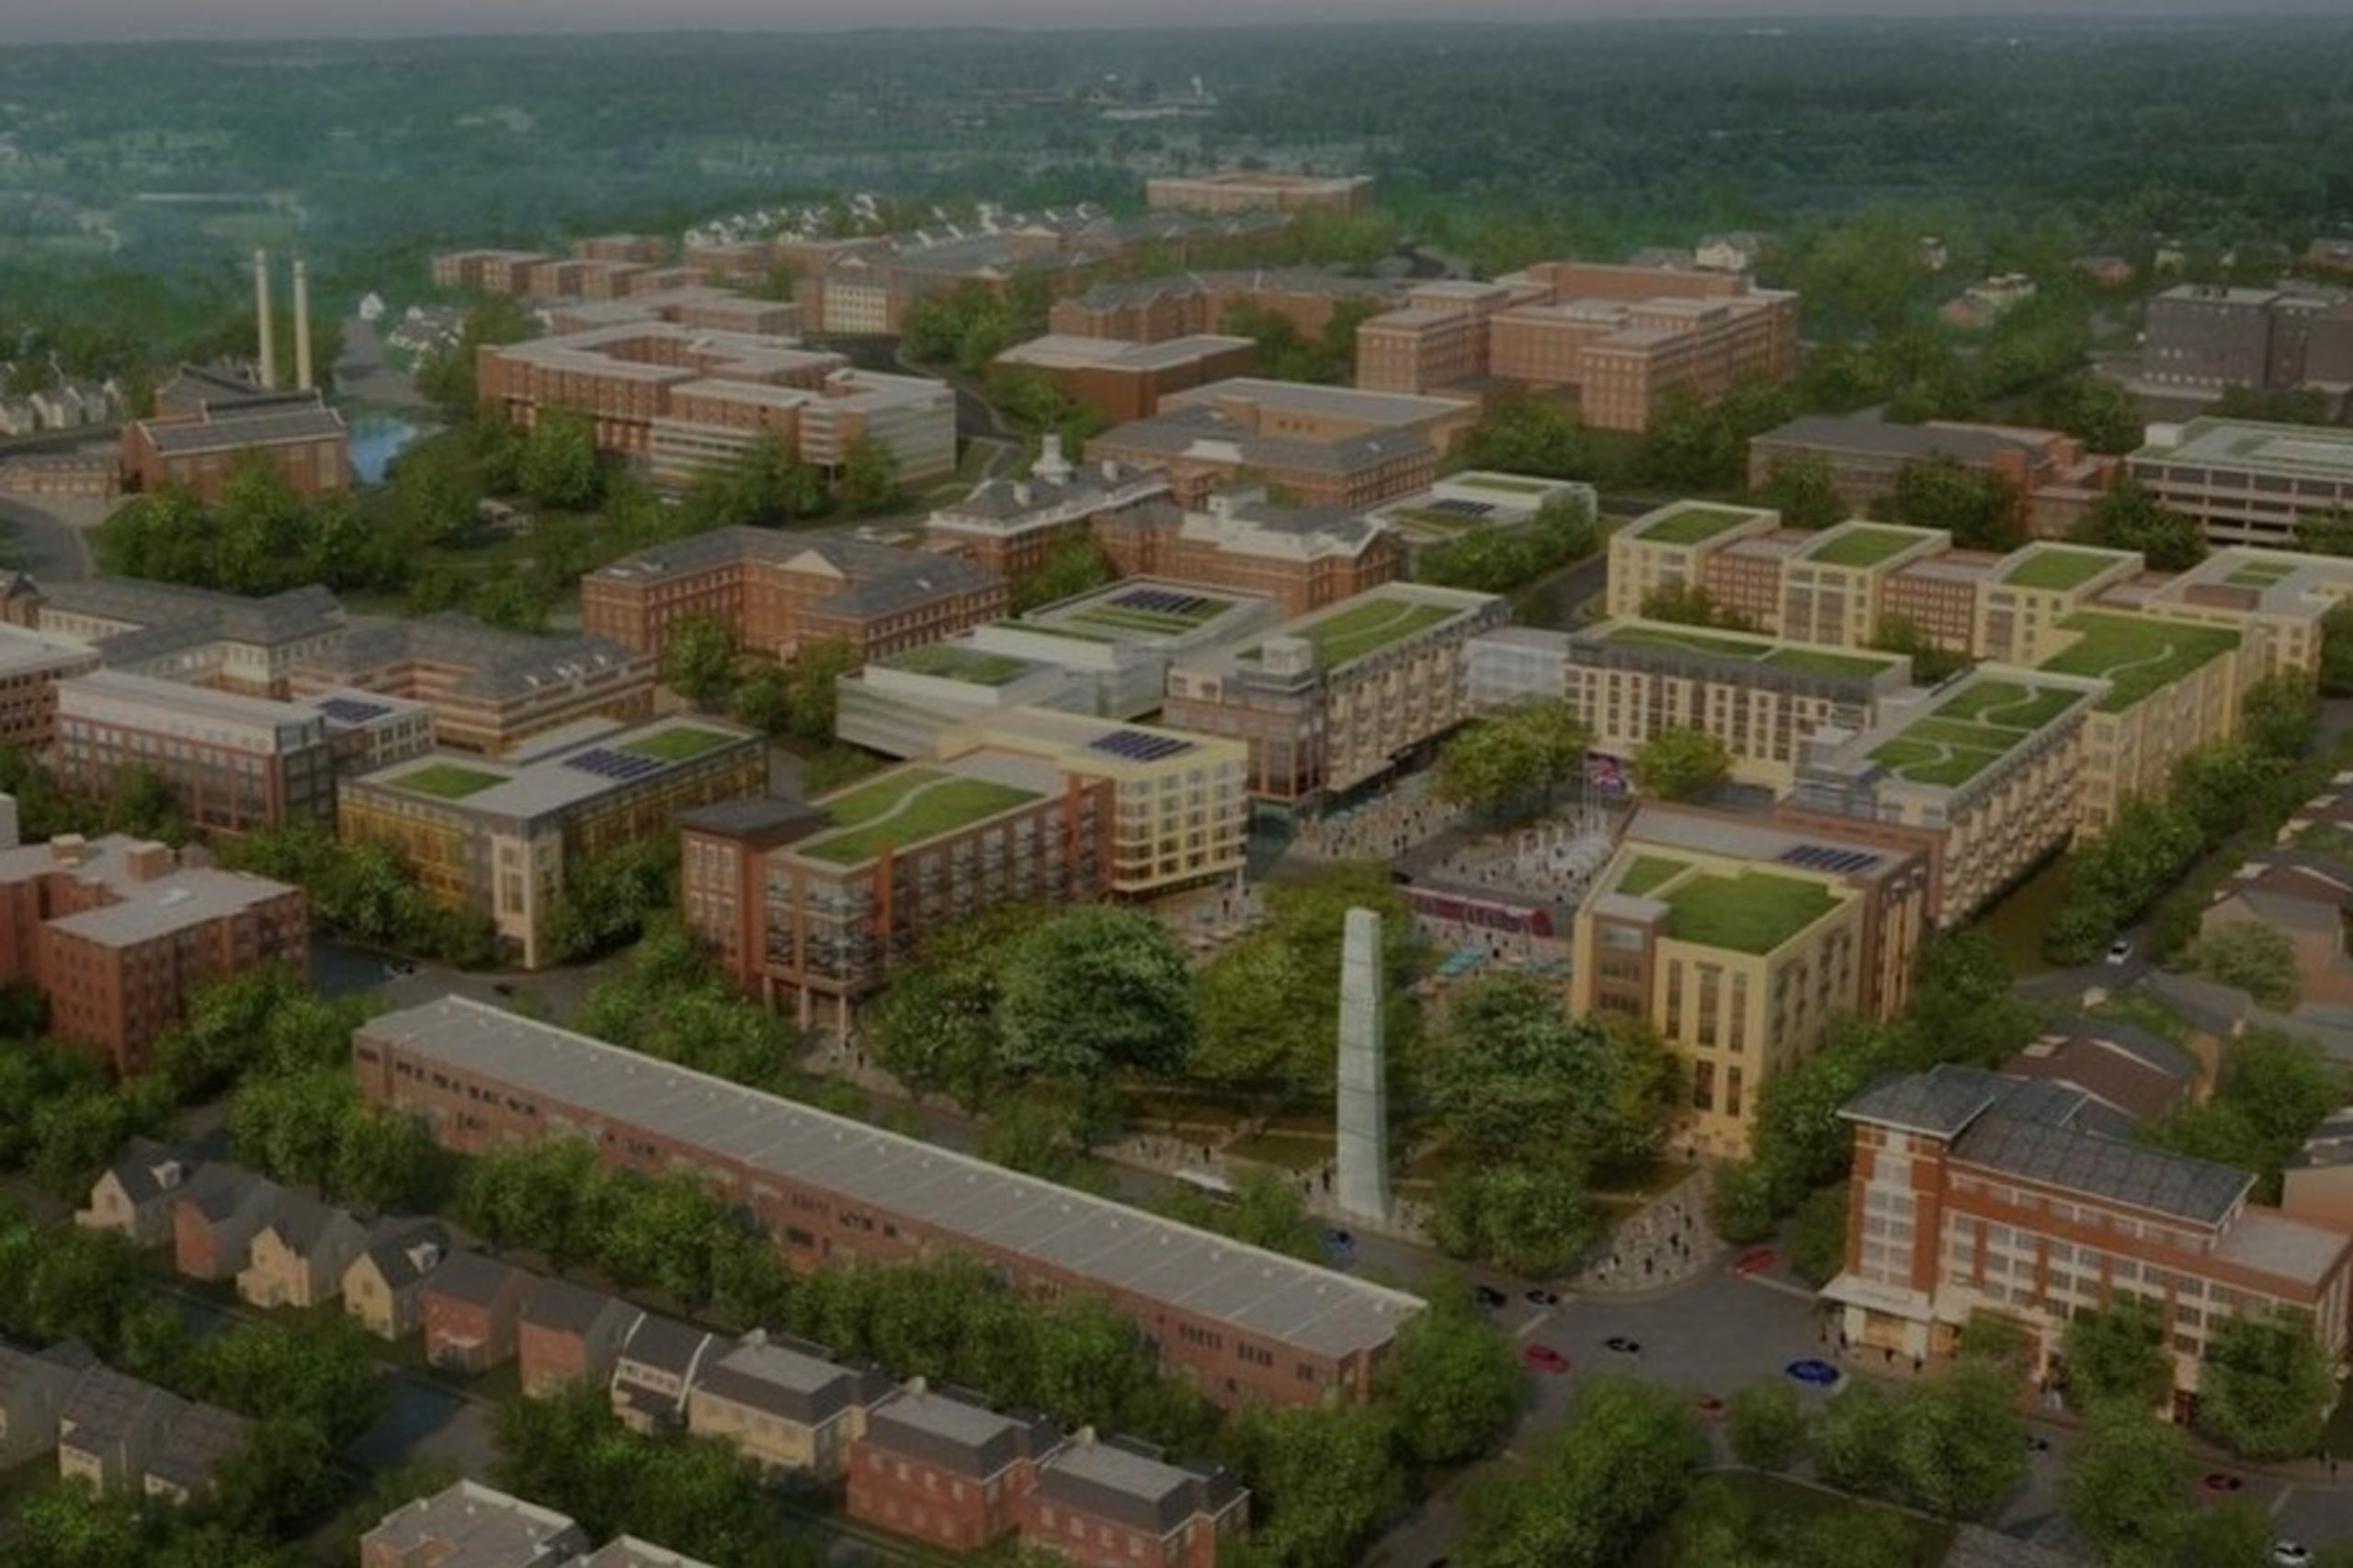 D.C. acquires 66 acres of Walter Reed Campus